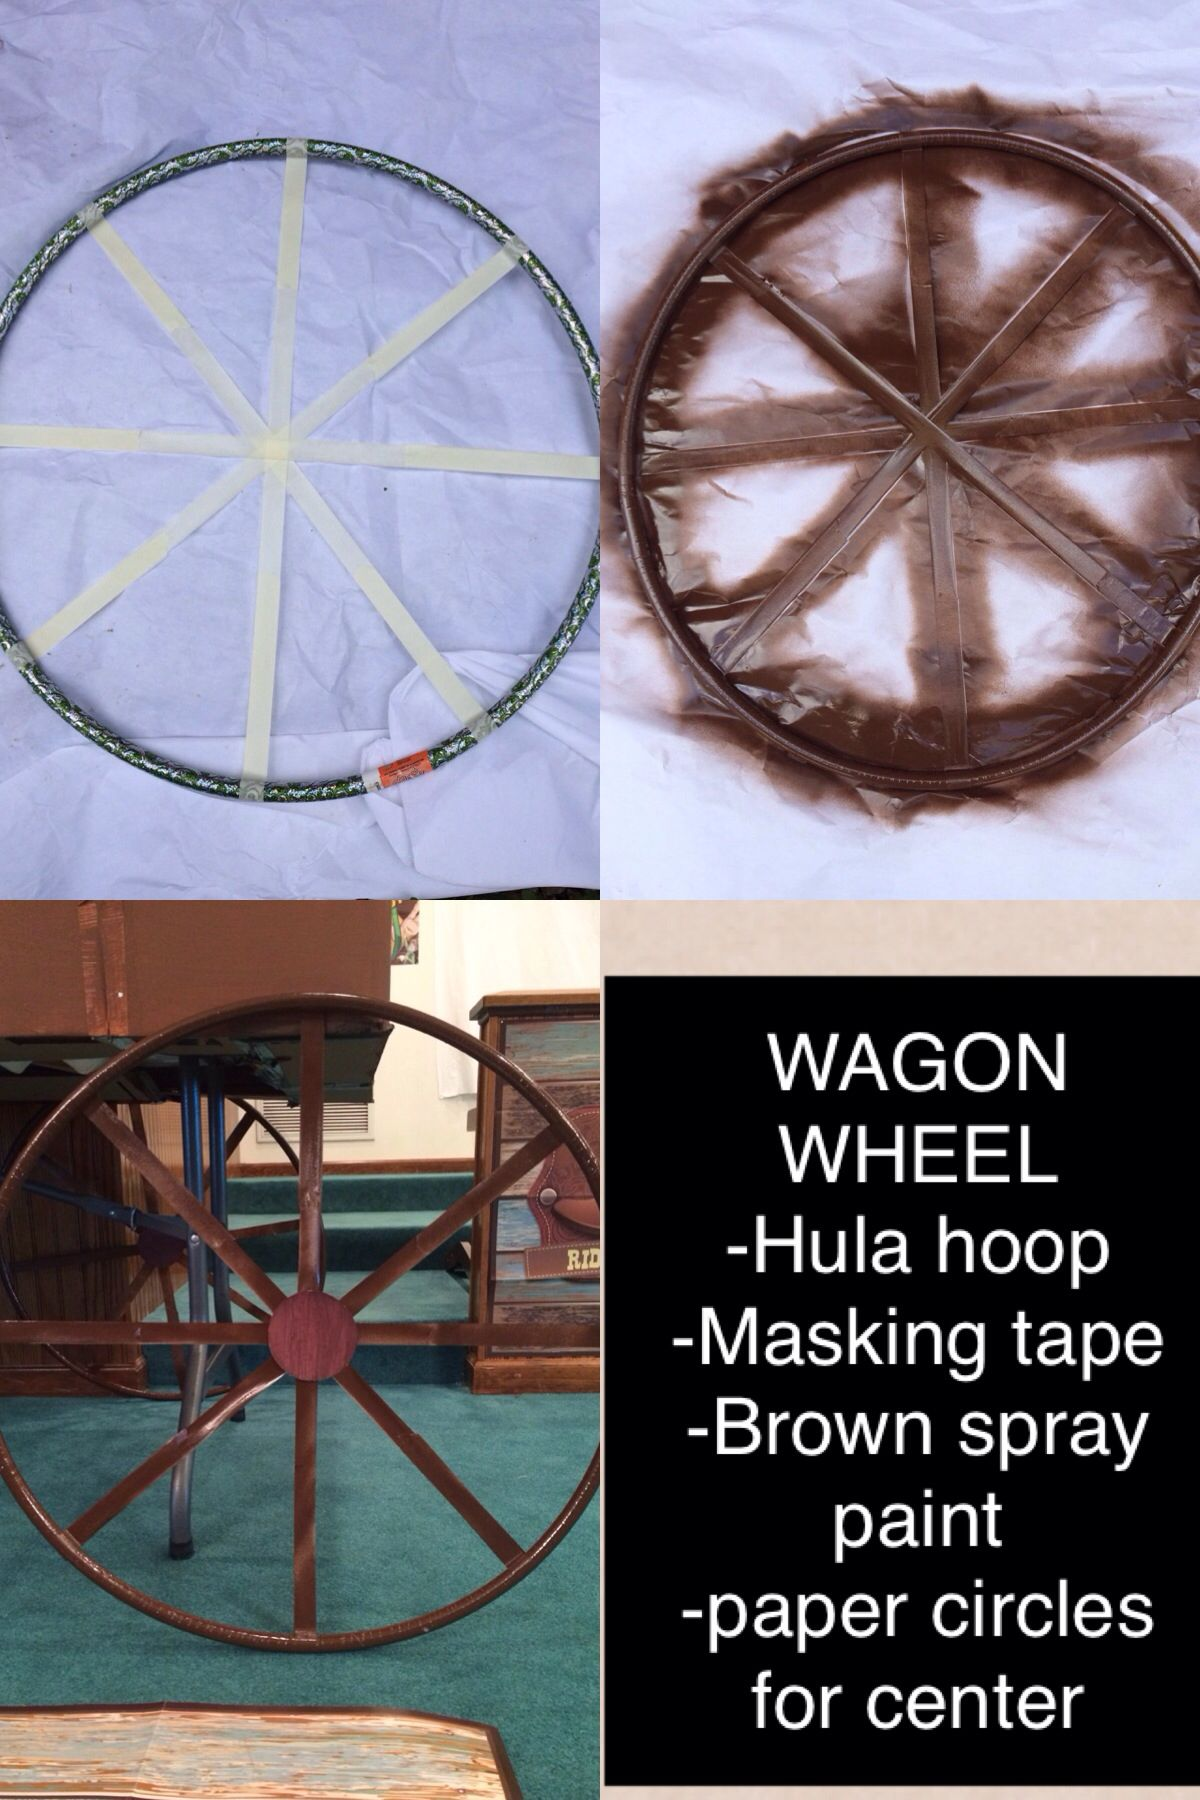 How To Make A Wagon Wheel Out Of A Hula Hoop & Masking Tape